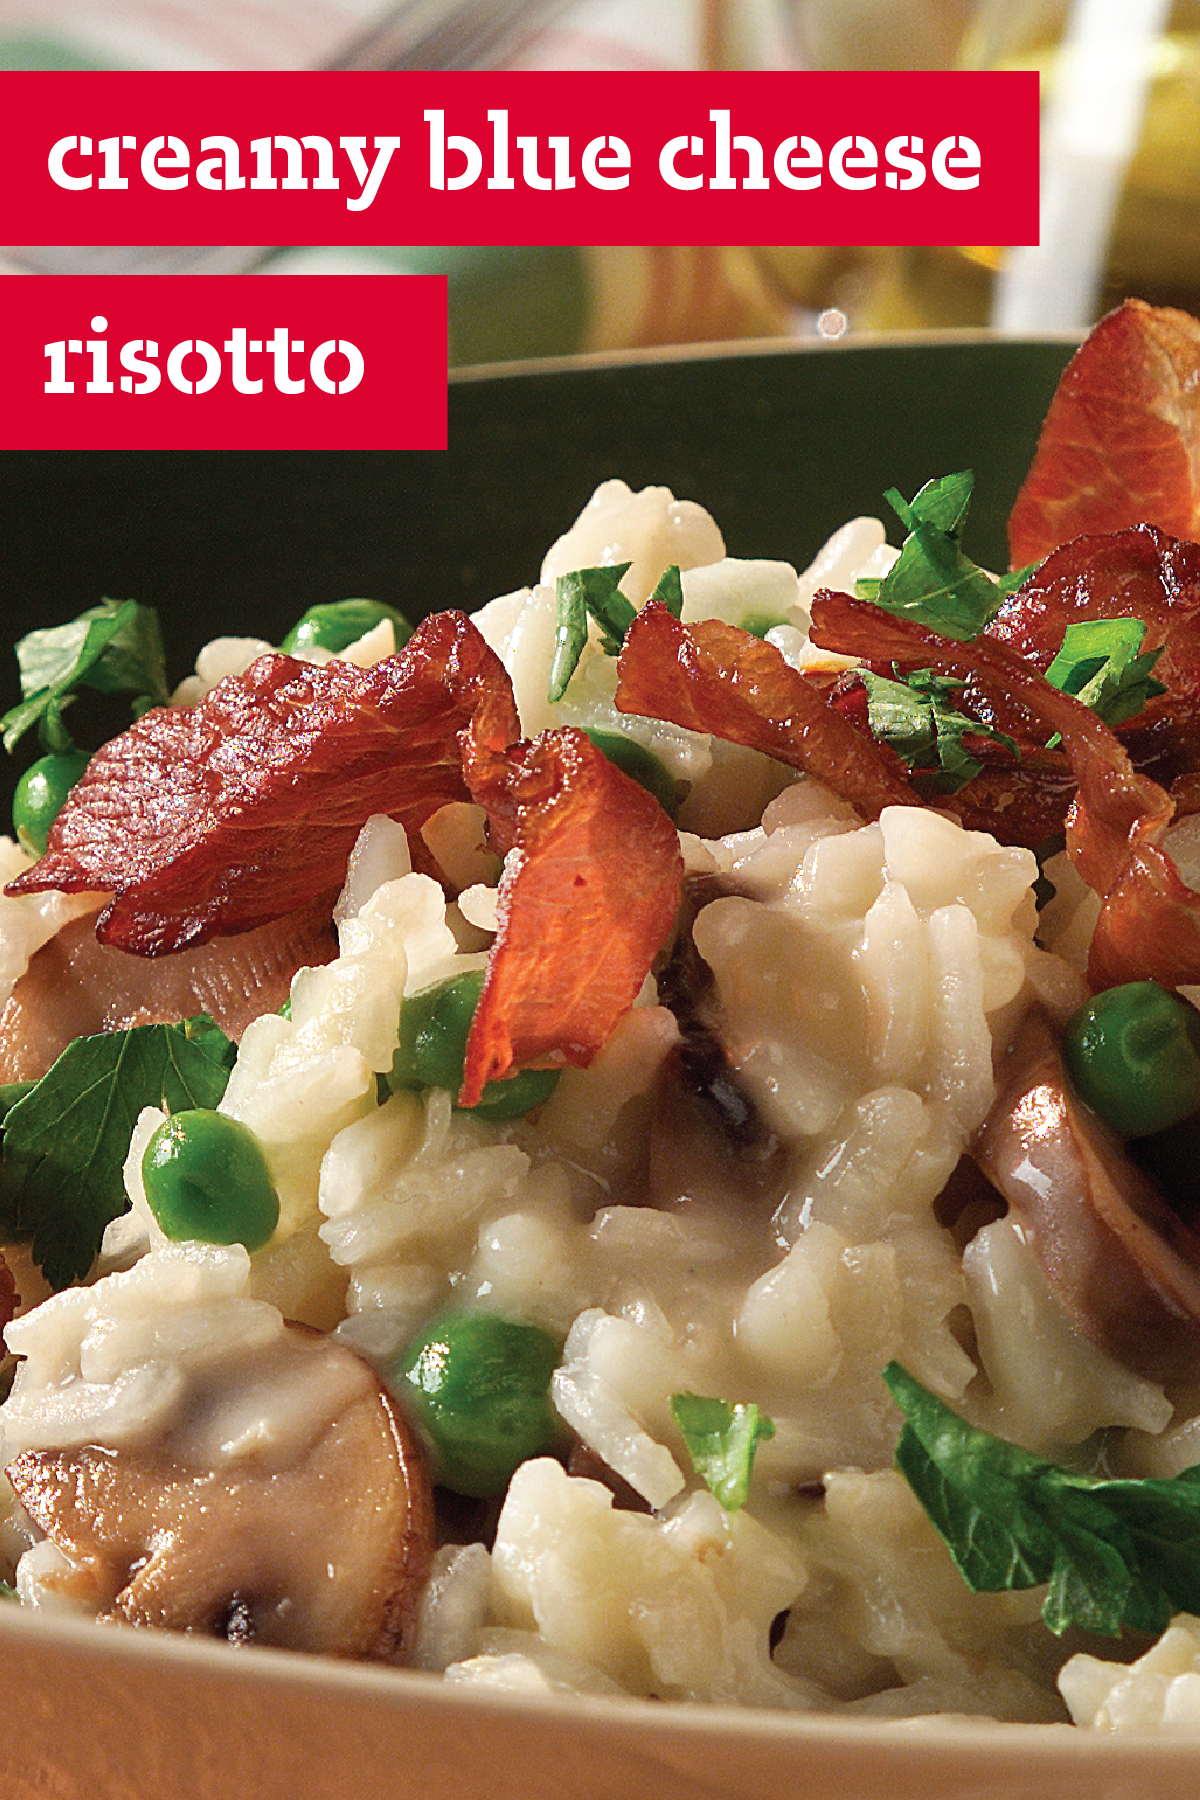 Creamy Blue Cheese Risotto – Filled with prosciutto, peas, mushrooms, and onions, this traditional creamy Italian rice dish is also flavored with garlic, Parmesan, and blue cheese. All in all, this creamy recipe is packed with flavor.